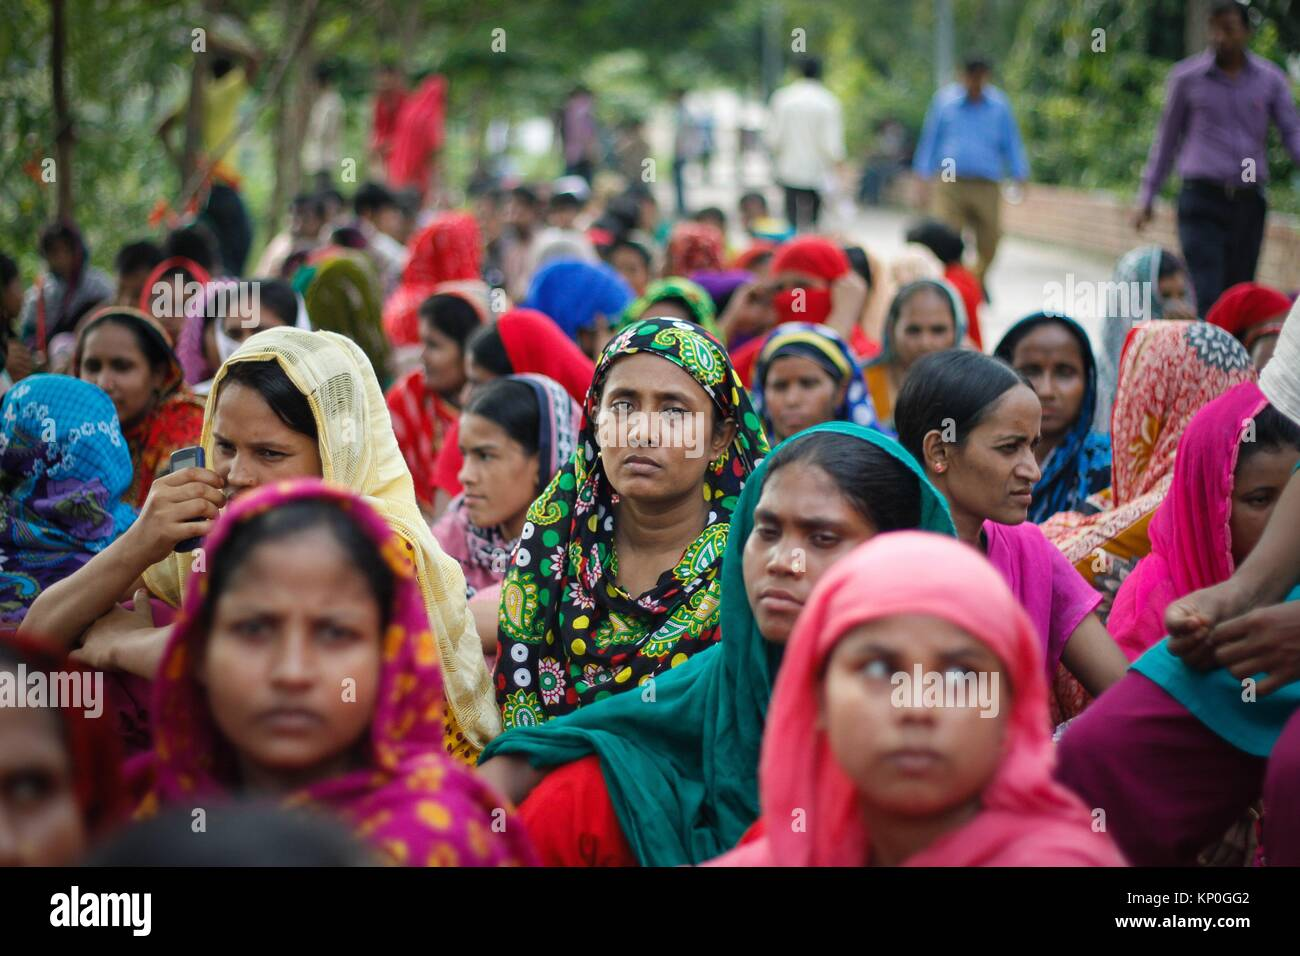 Bangladeshi garments workers attend a demonstration protest for their due salary and wages in front of National Stock Photo